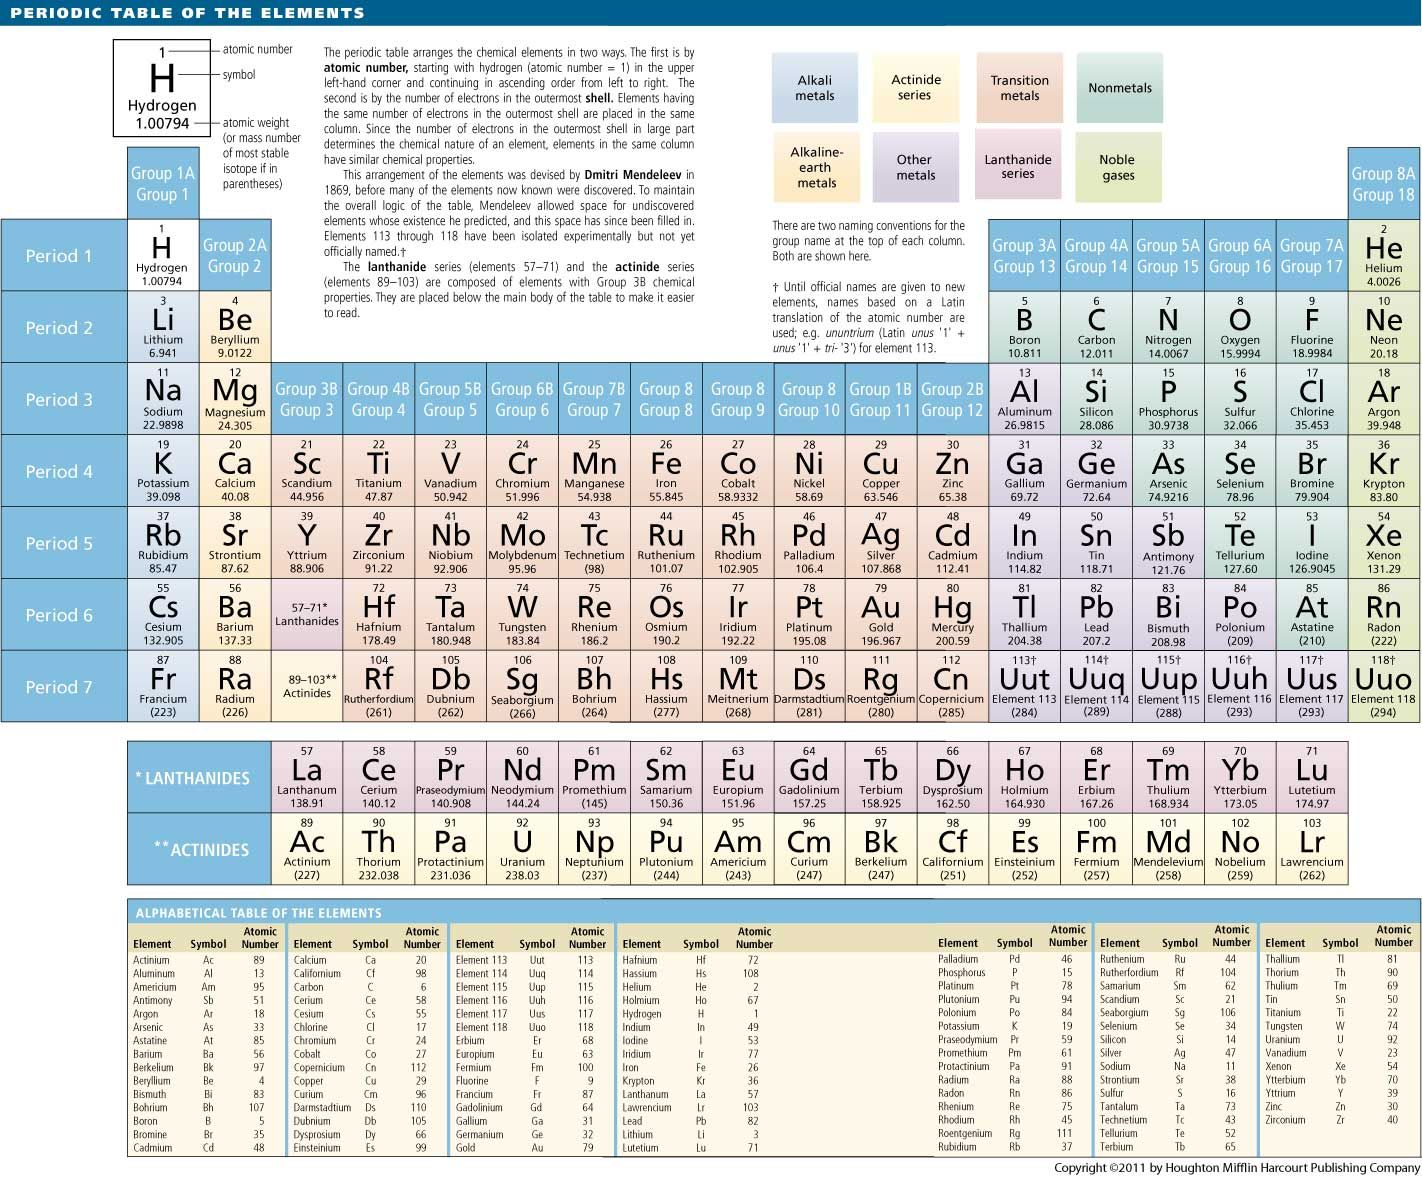 Periodic table of elements definition remoultai pinterest periodic table of elements definition chemistry mottcountle urtaz